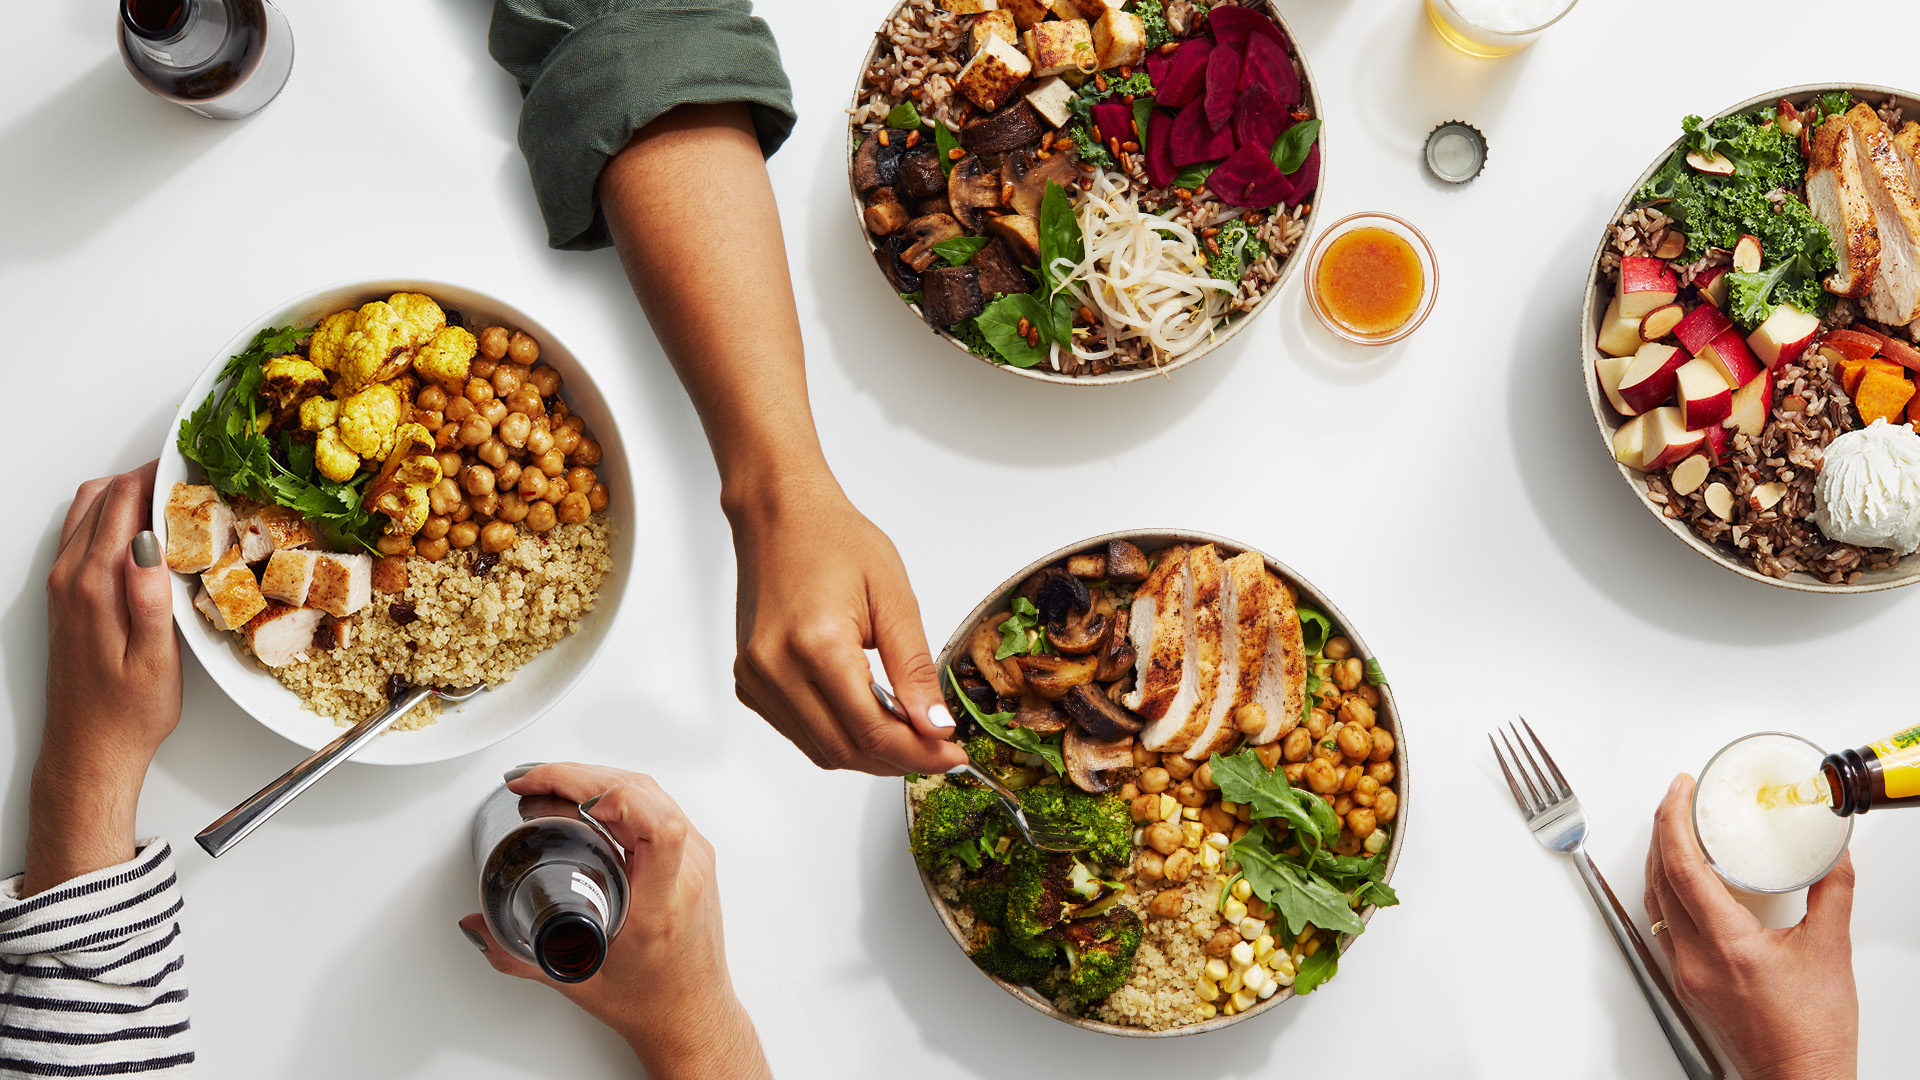 Image from sweetgreen